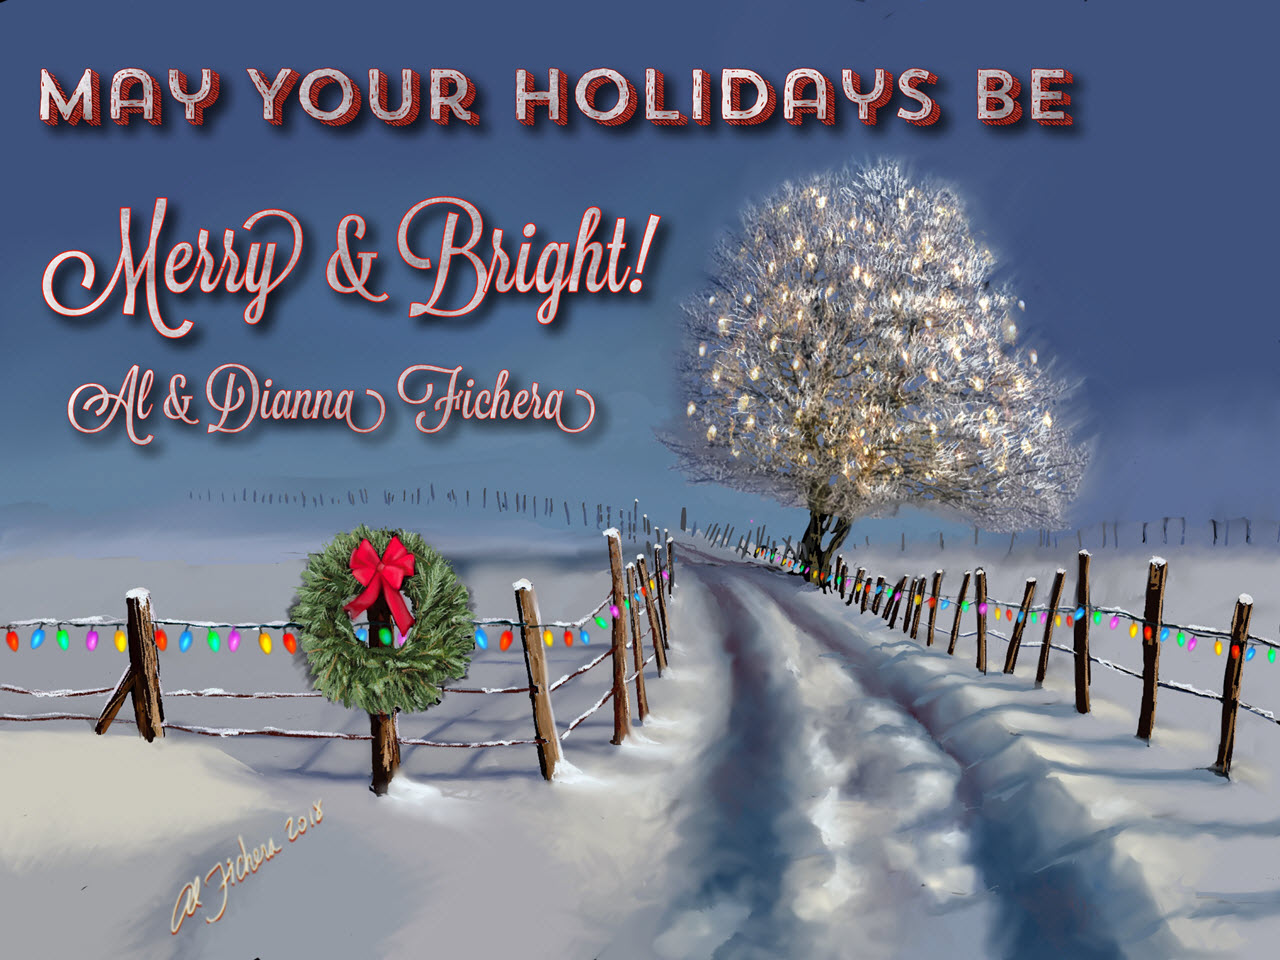 Holiday Wishes Merry and Bright